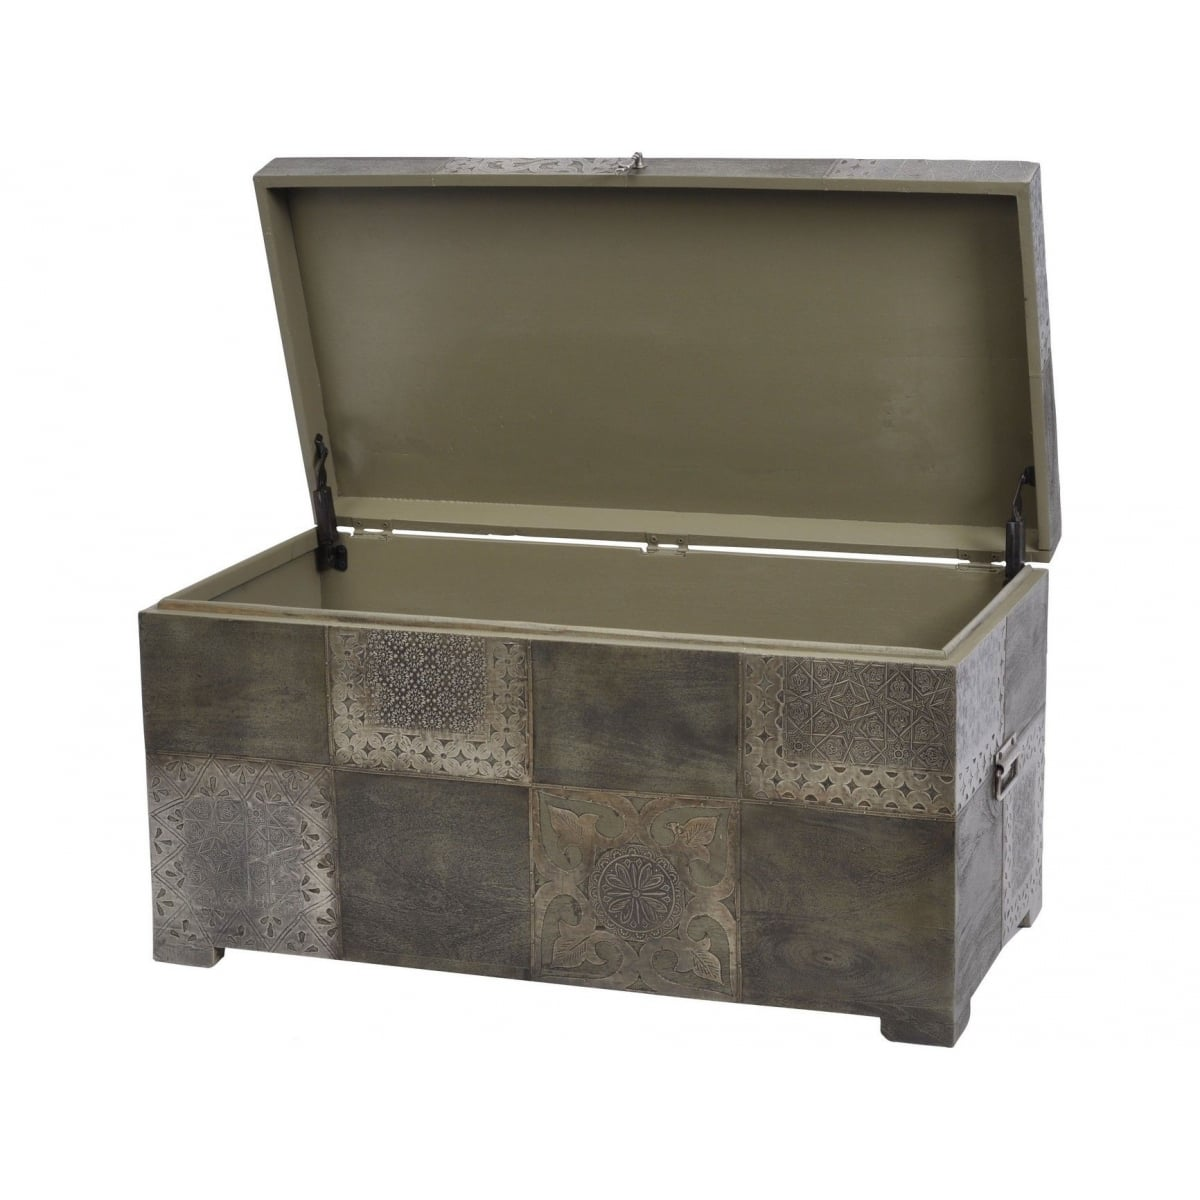 Storage trunk storage coffee table swanky interiors Coffee table chest with storage